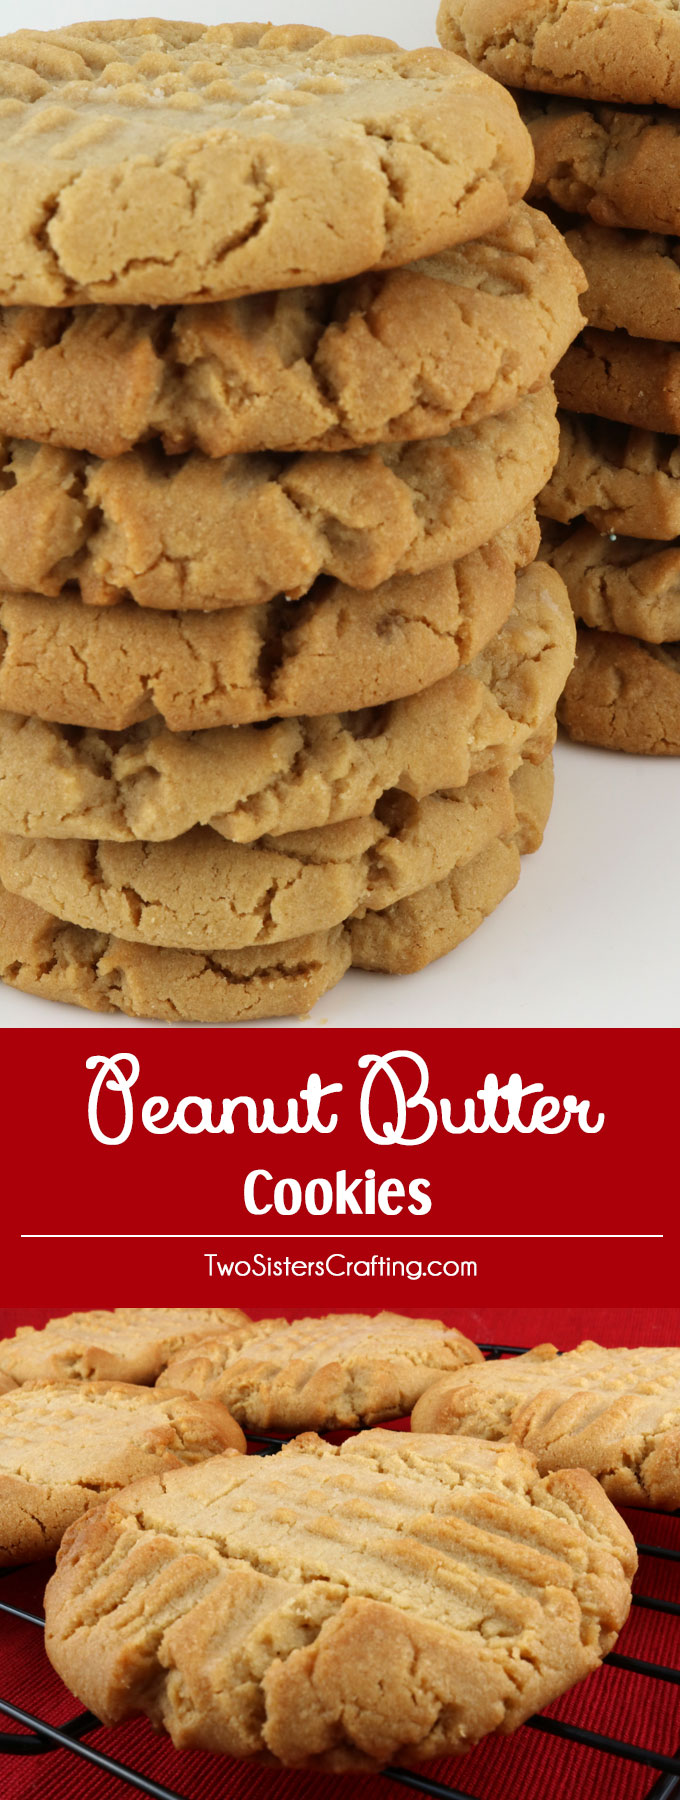 Peanut Butter Cookies - Crunchy on the outside, chewy and peanut-buttery on the inside.  These cookies are Mmmmm .... mmmmm... good. These yummy baked peanut butter cookies are easy to make and super delicious. Pin this yummy Cookie Recipe for later and and follow us for more great Cookie Ideas.